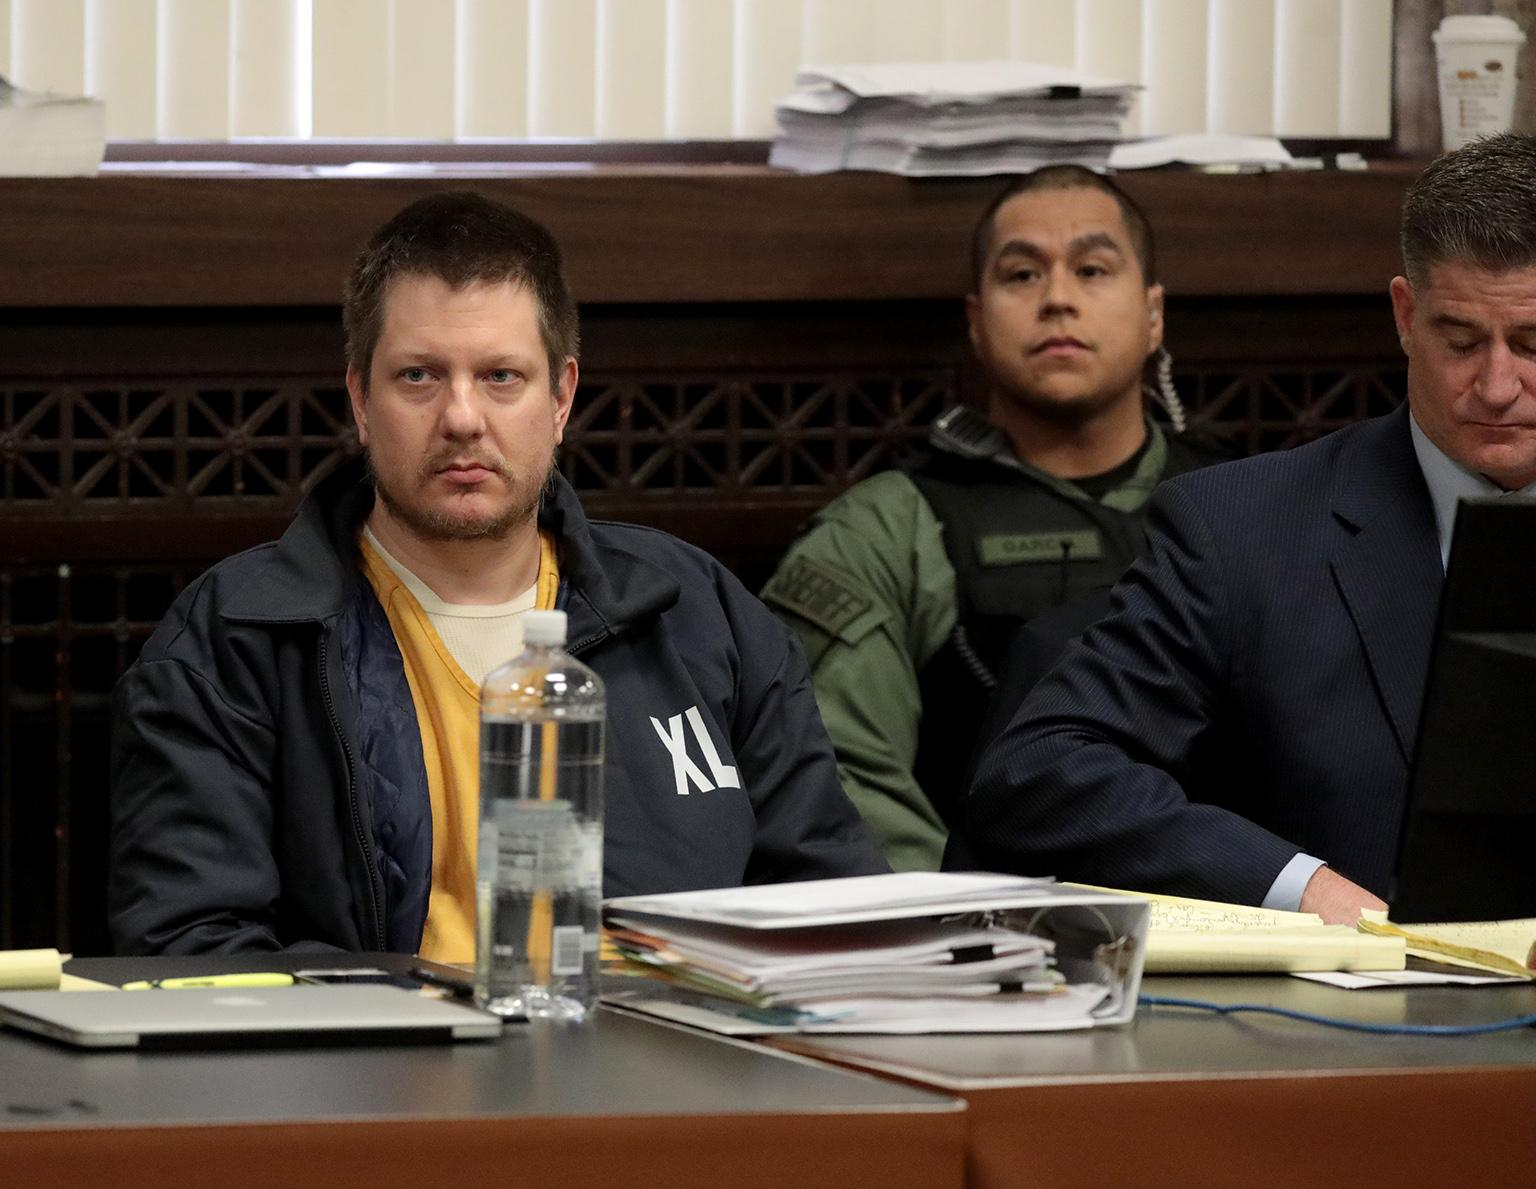 Former Chicago police Officer Jason Van Dyke and his attorney Daniel Herbert at the Leighton Criminal Court Building on Friday, Dec. 14, 2018. (Antonio Perez / Chicago Tribune / pool)